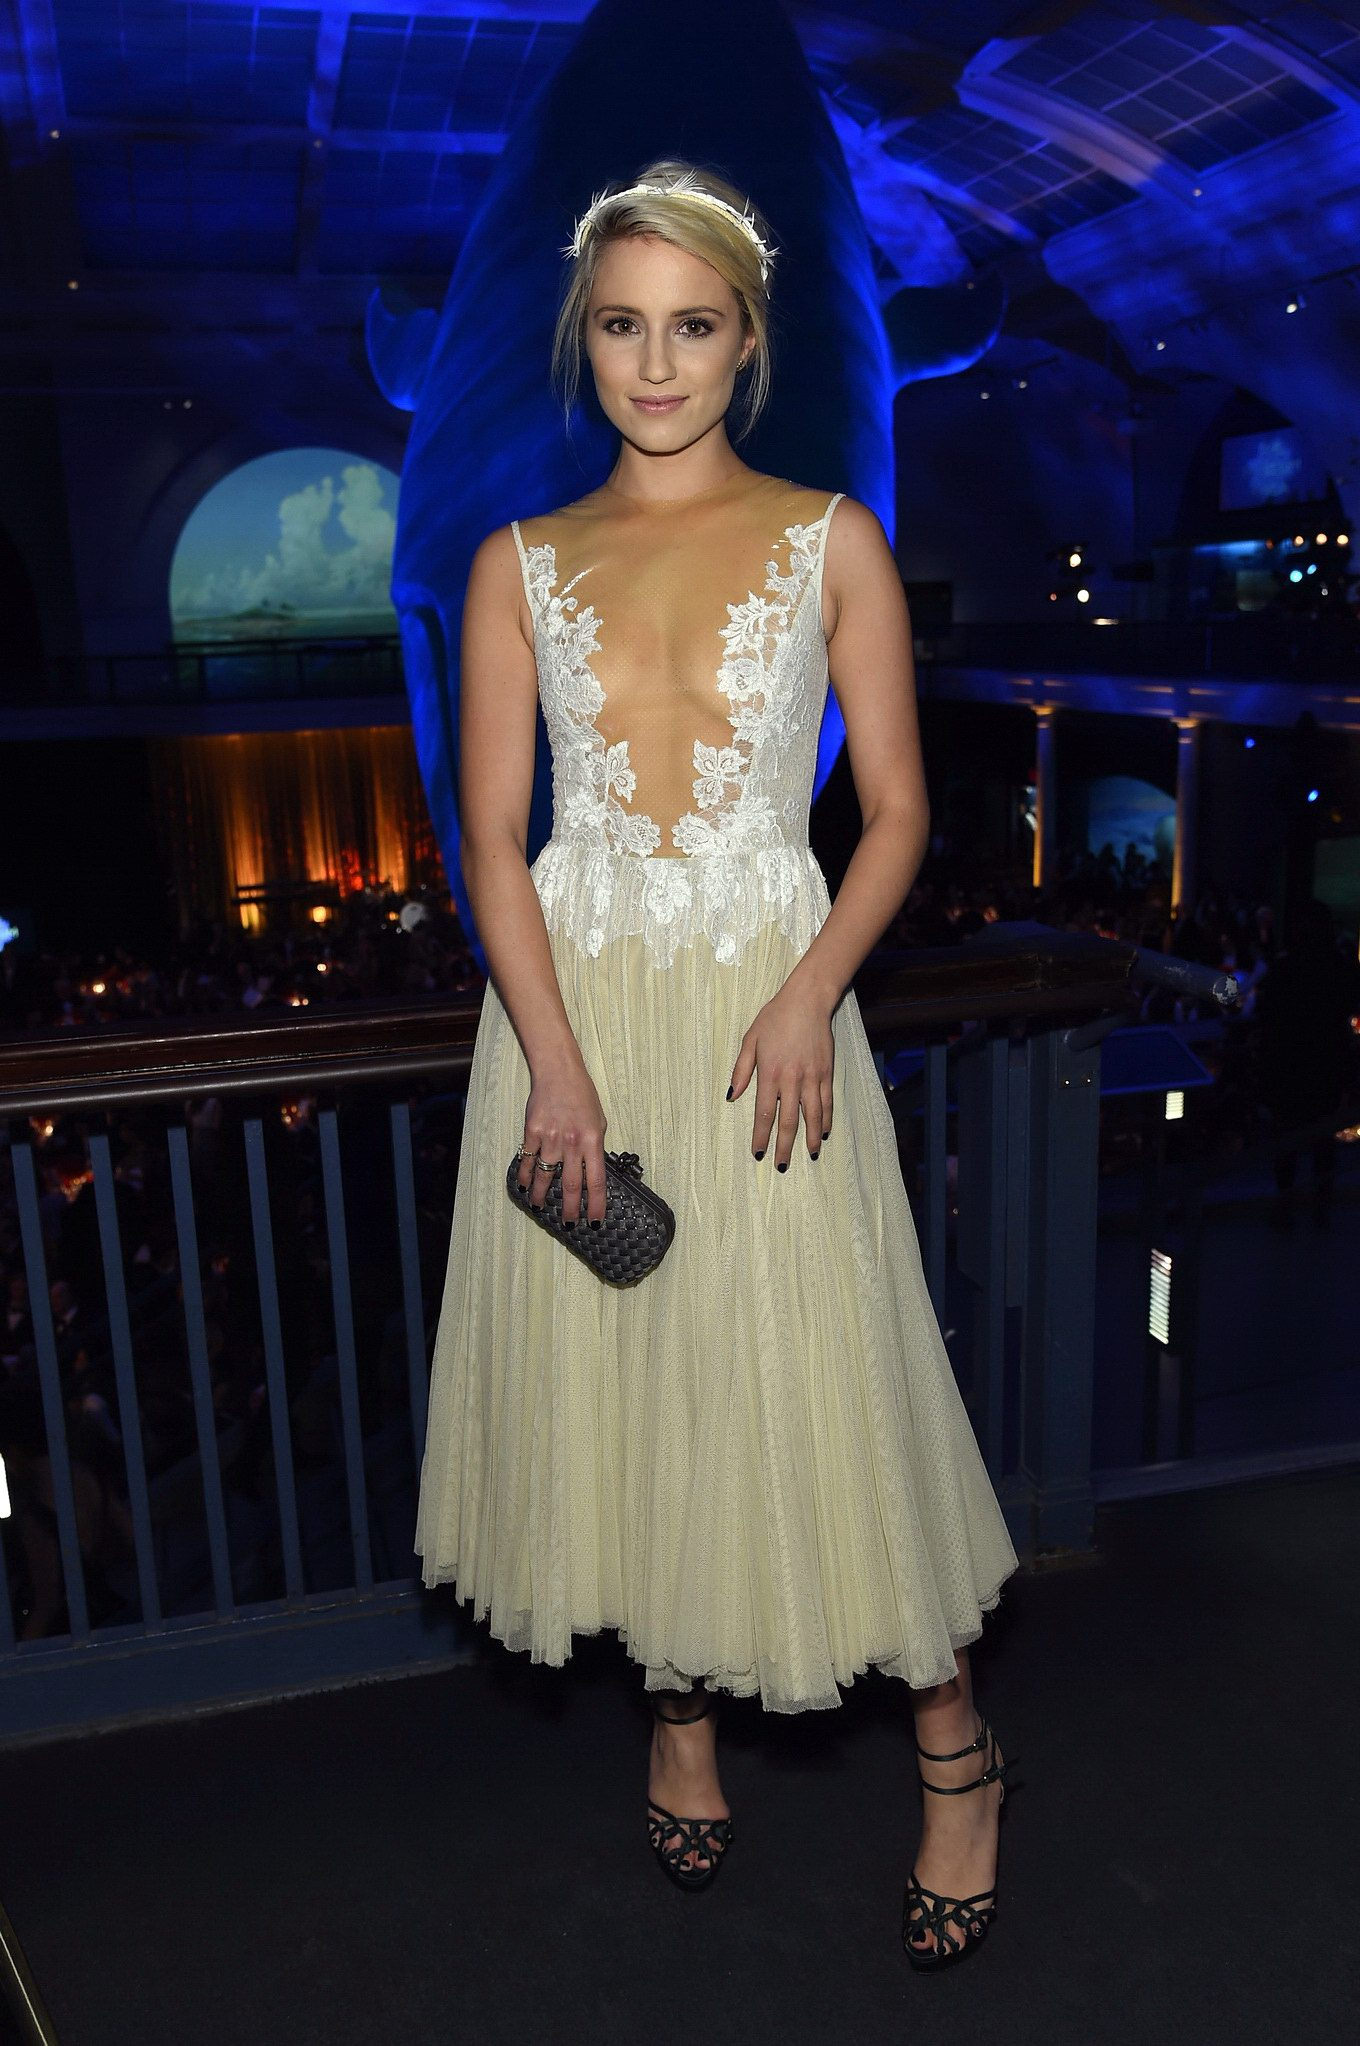 dianna agron braless wearing a partially see through dress